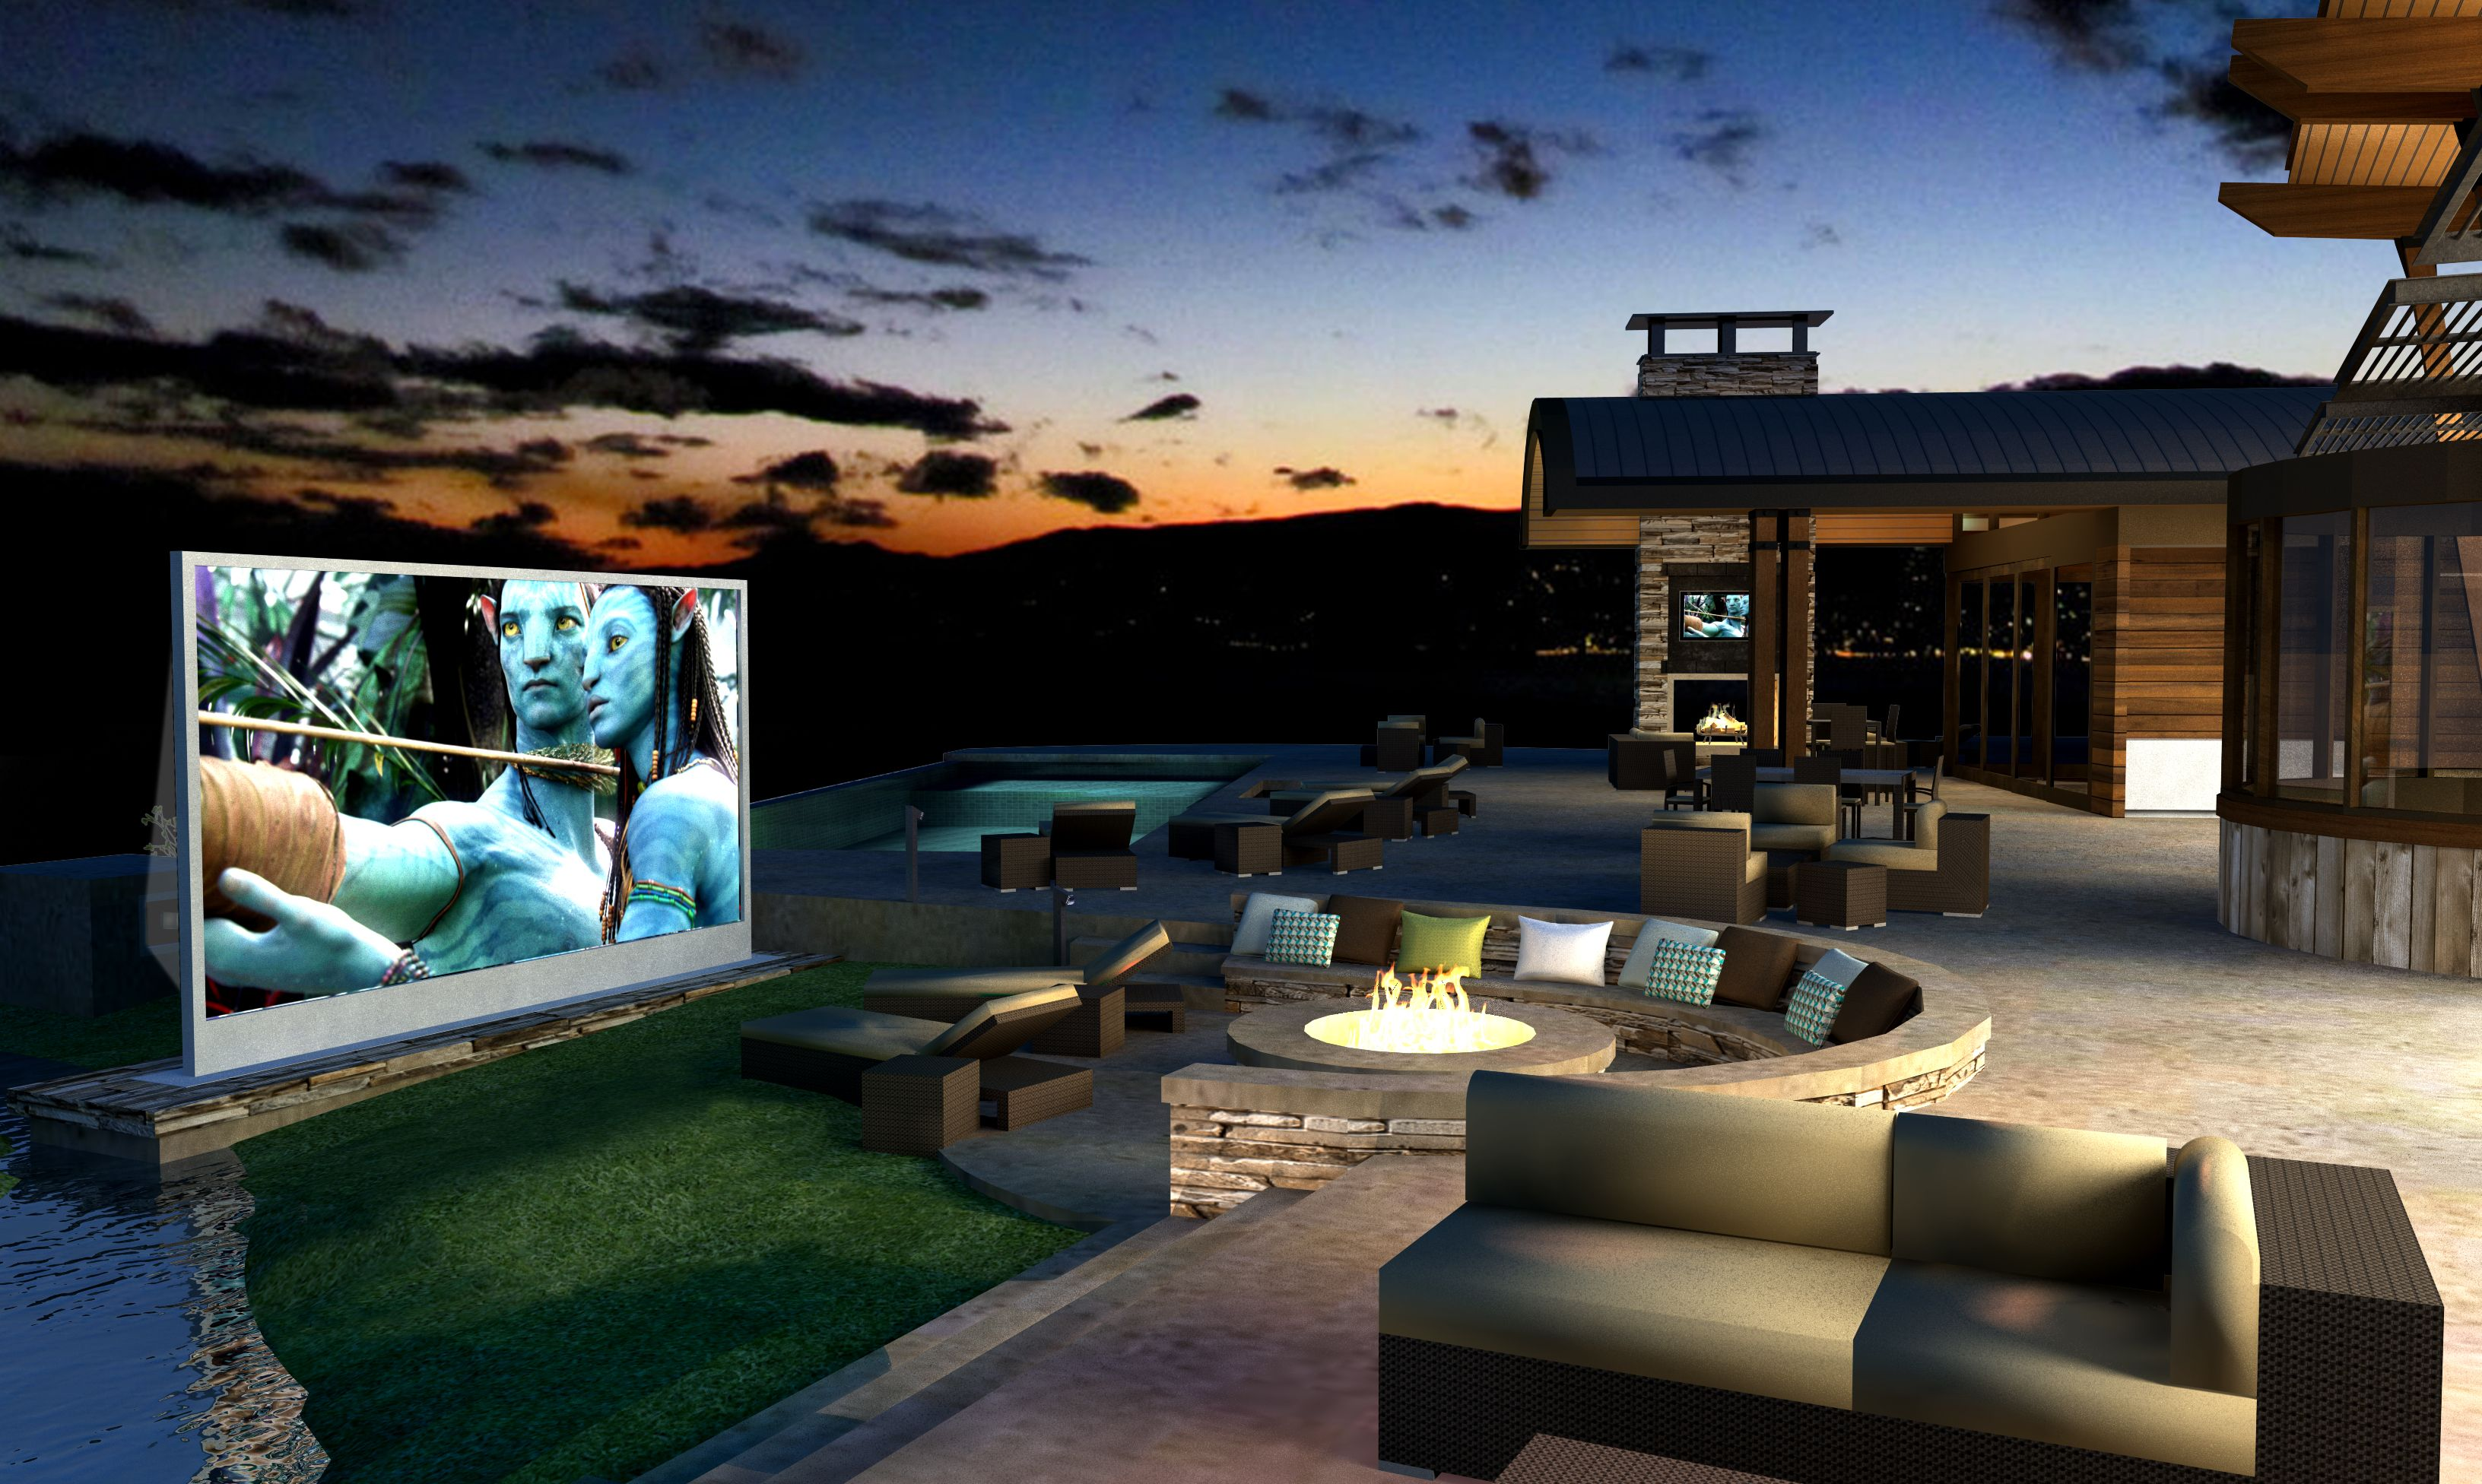 bargains for building your own outdoor movie theater outdoor